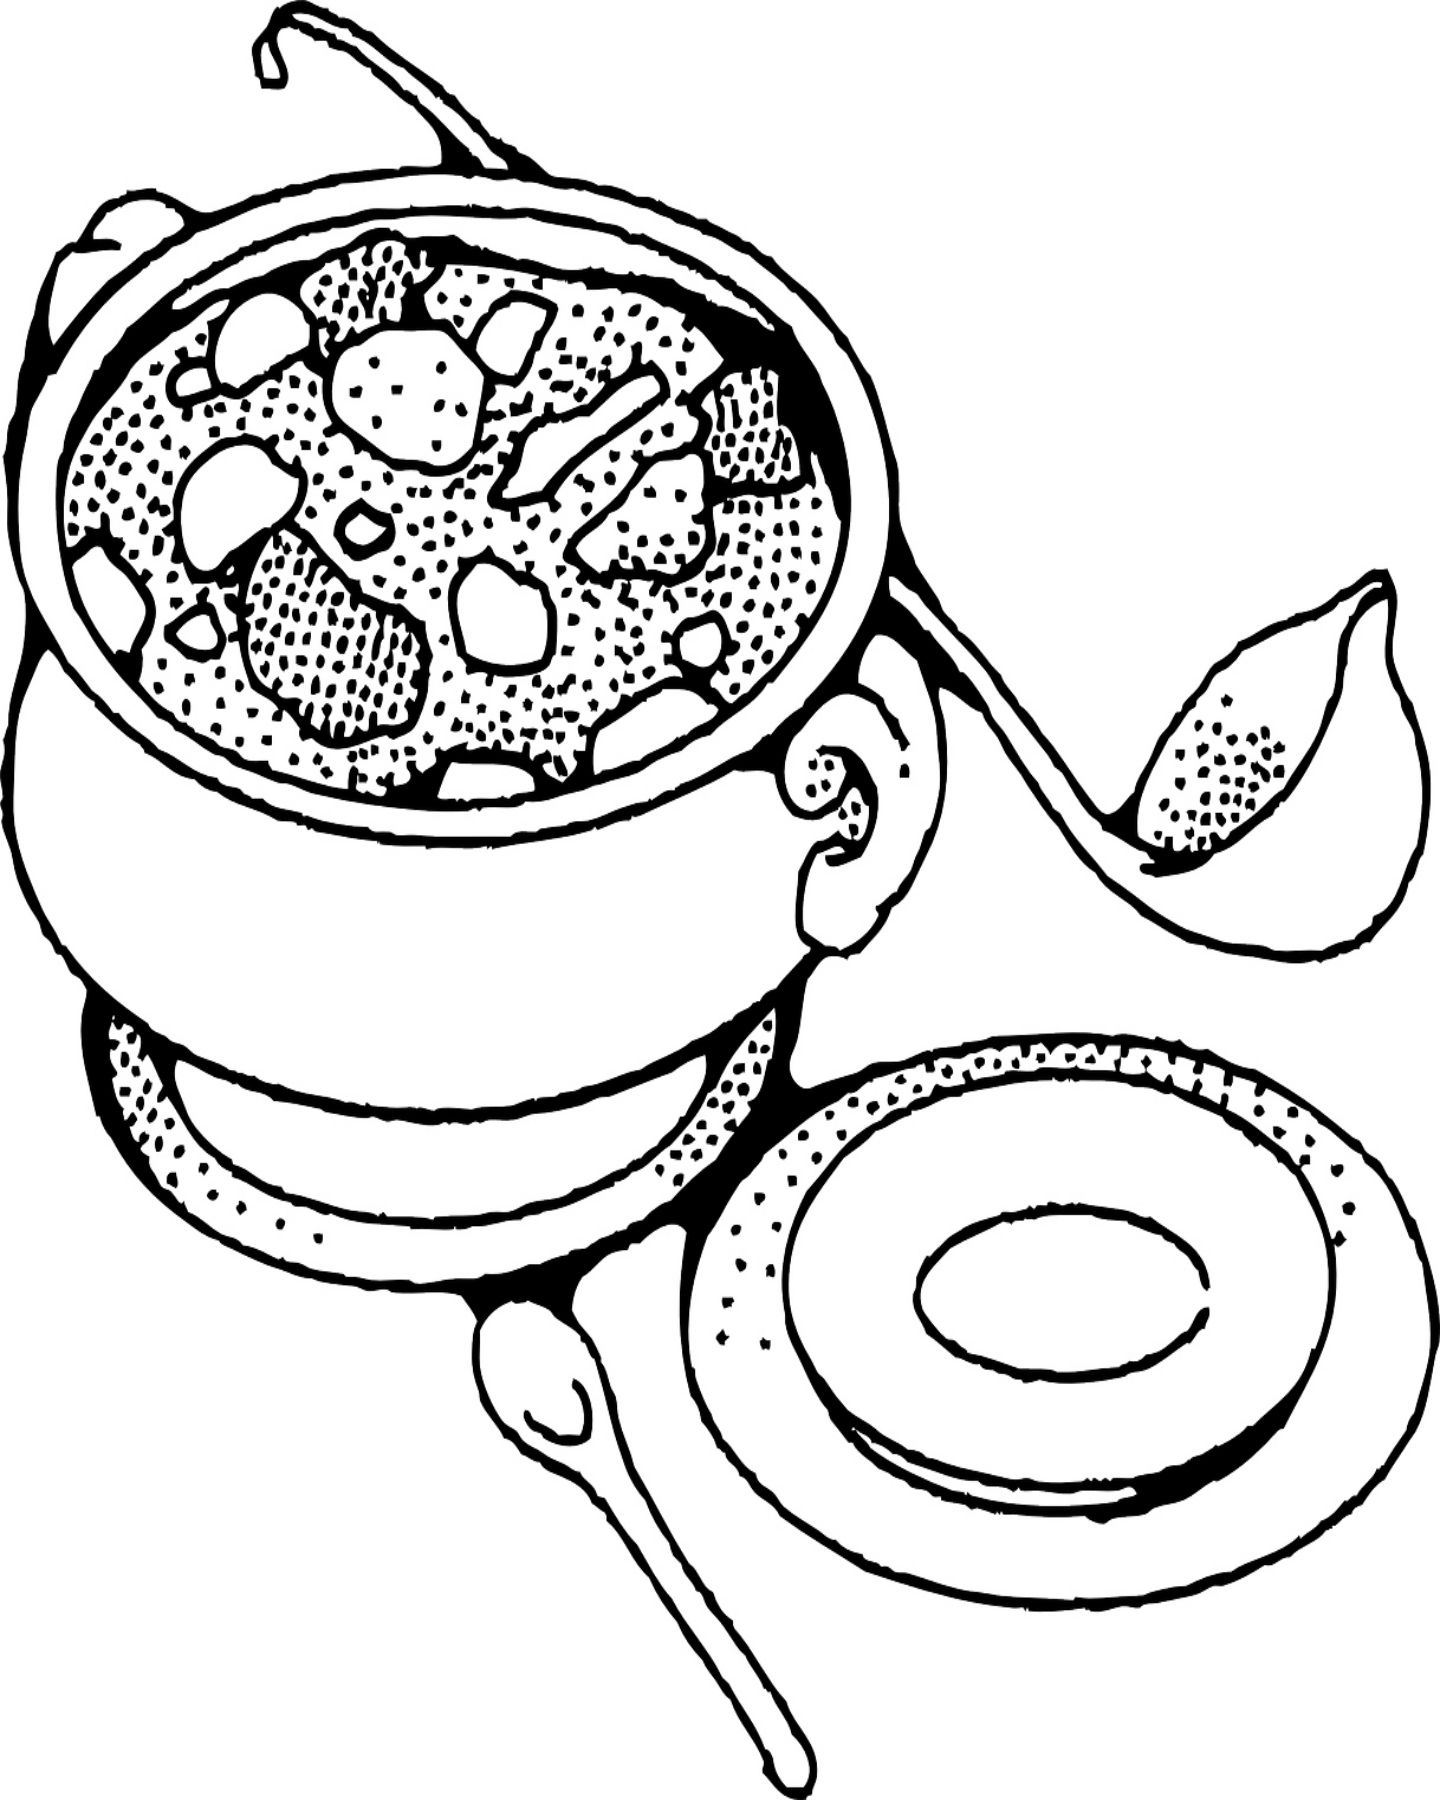 Free Printable Soup Coloring Page With Images Free Coloring